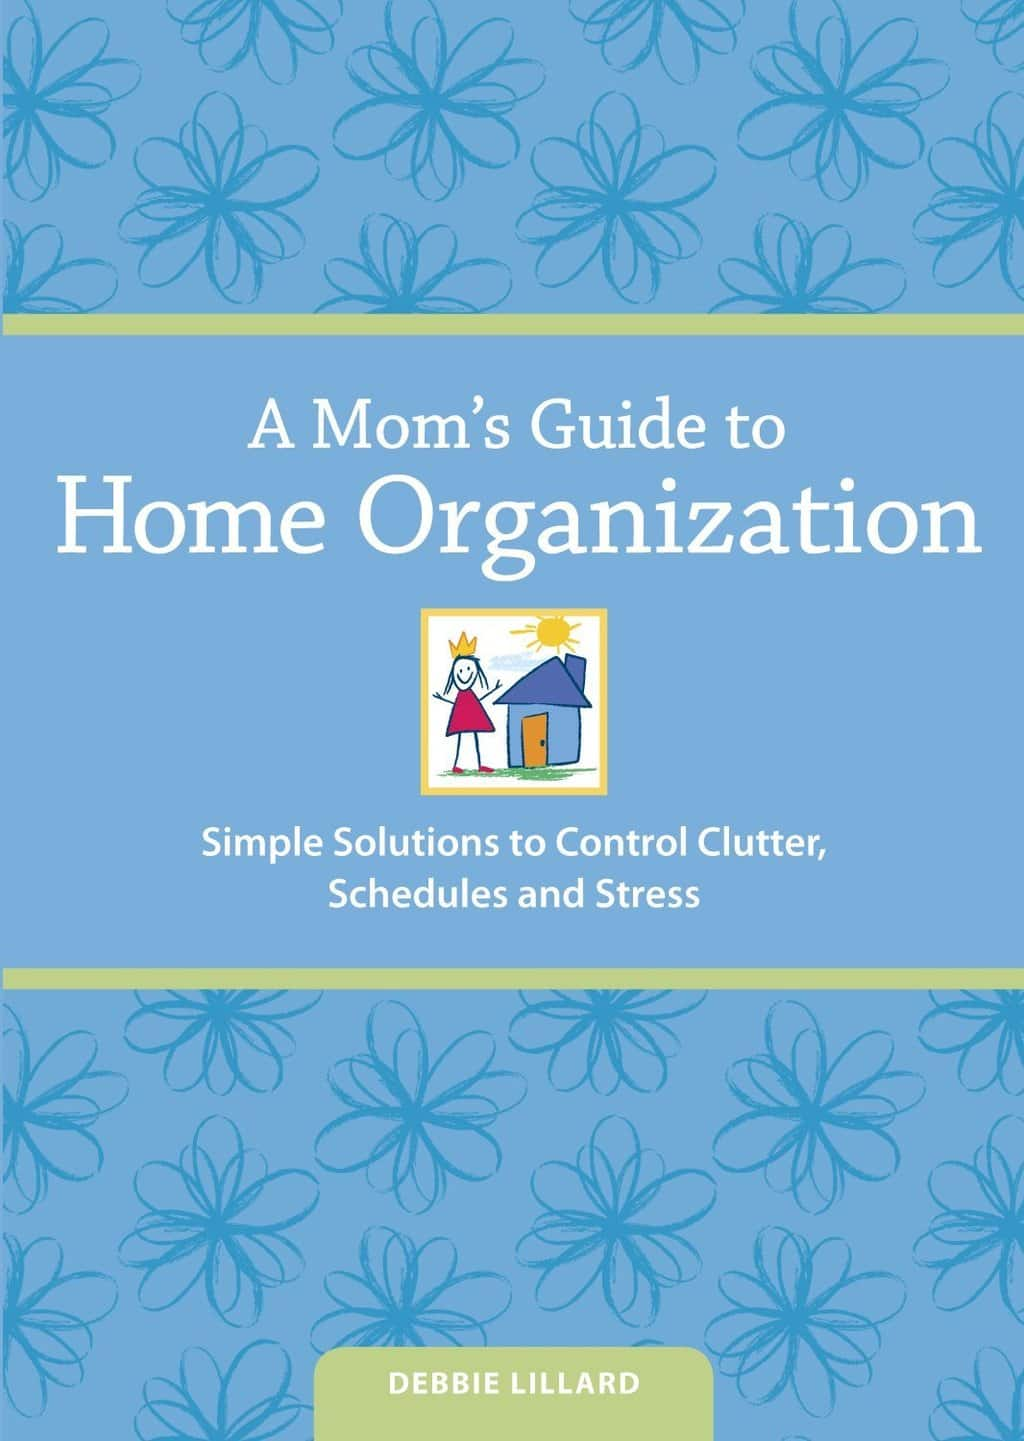 A moms guide to home organization. Simple solutions to control clutter, schedules and stress